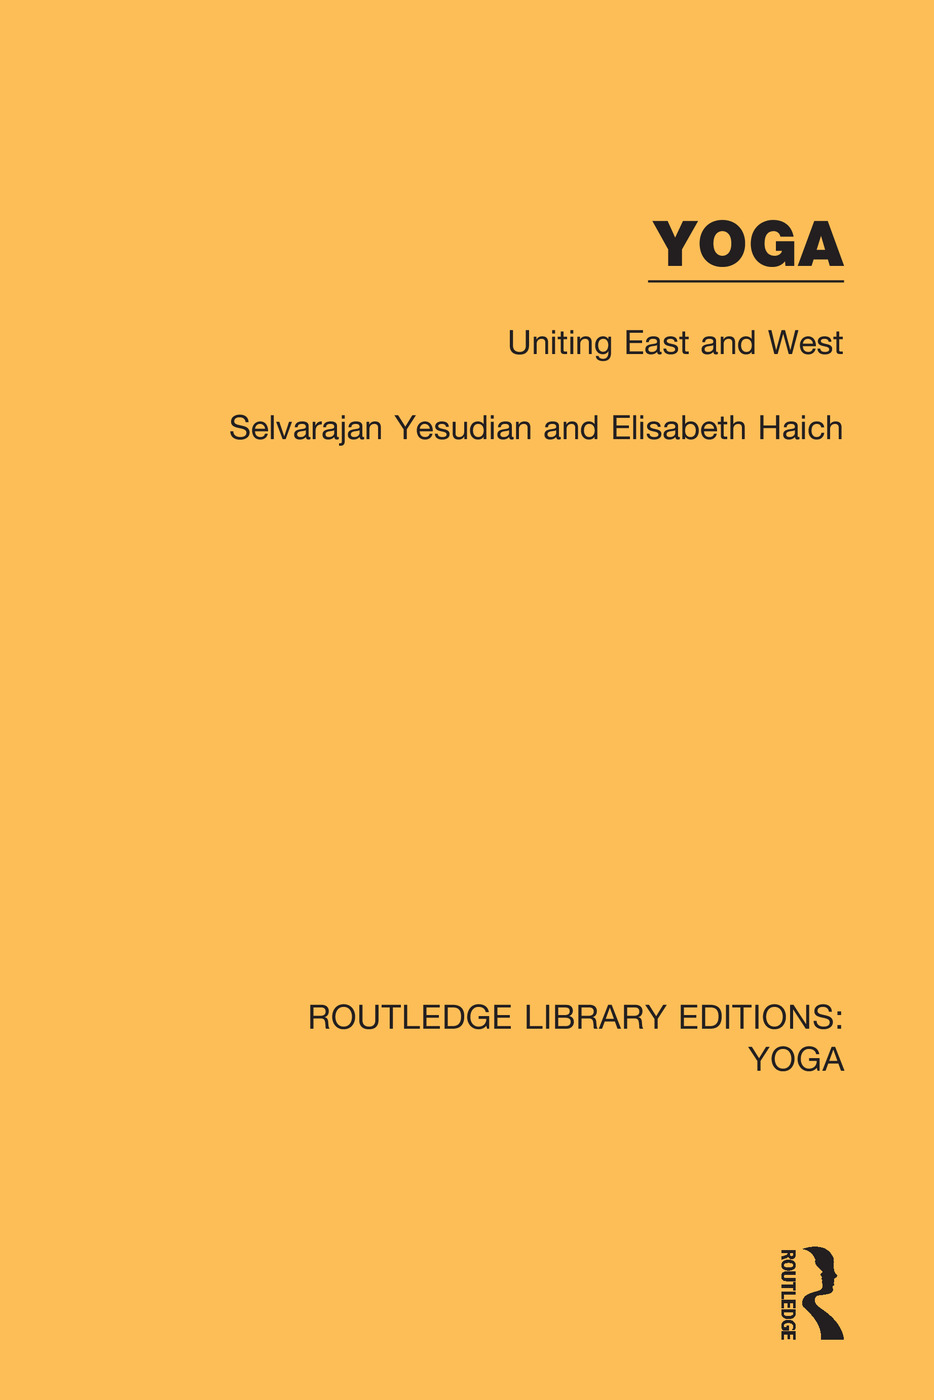 Yoga: Uniting East and West